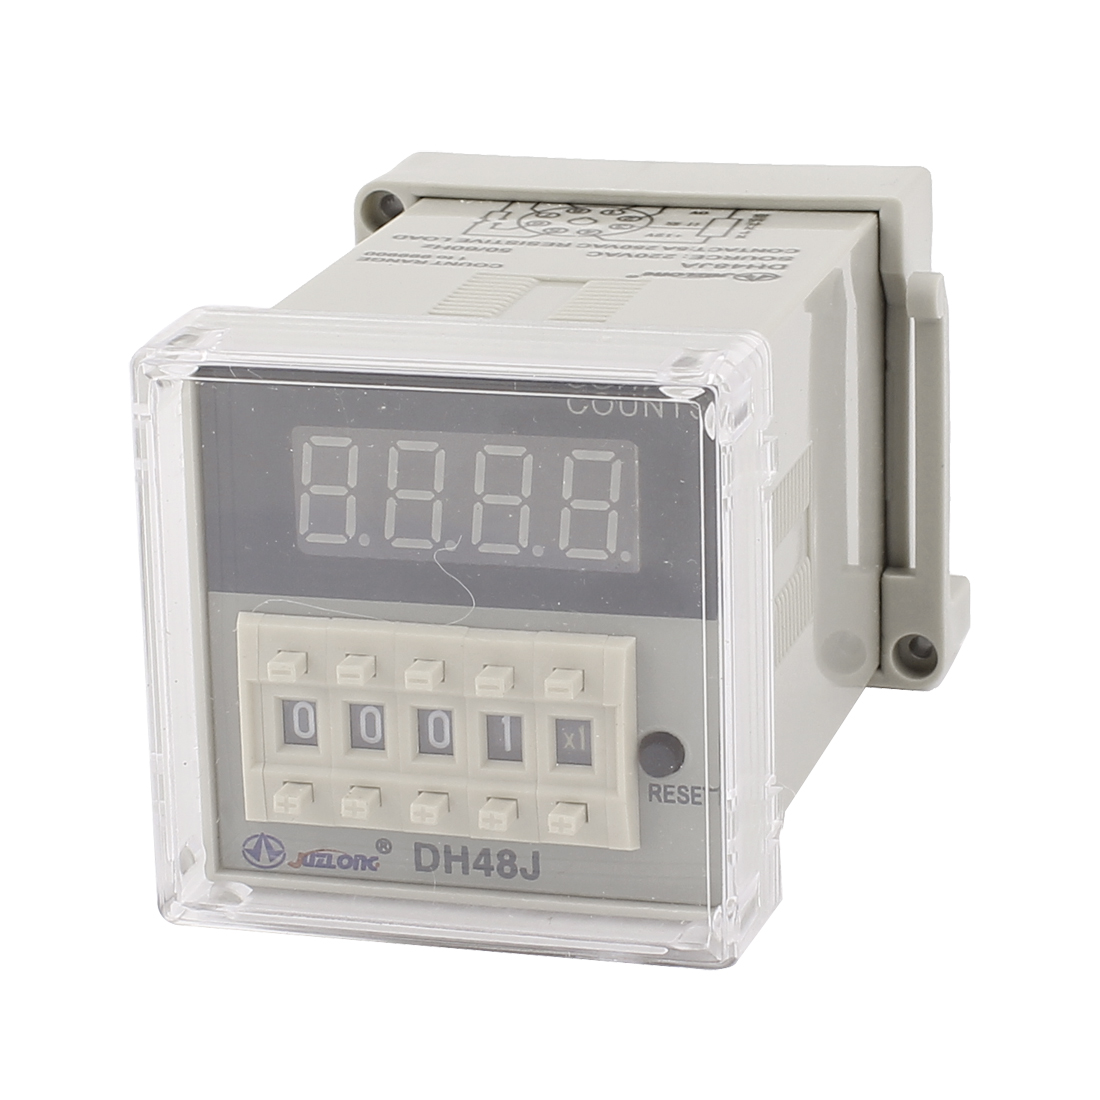 AC 220V DH48JA 8 Pins Digital Timer Time Delay Relay 1 to 999900